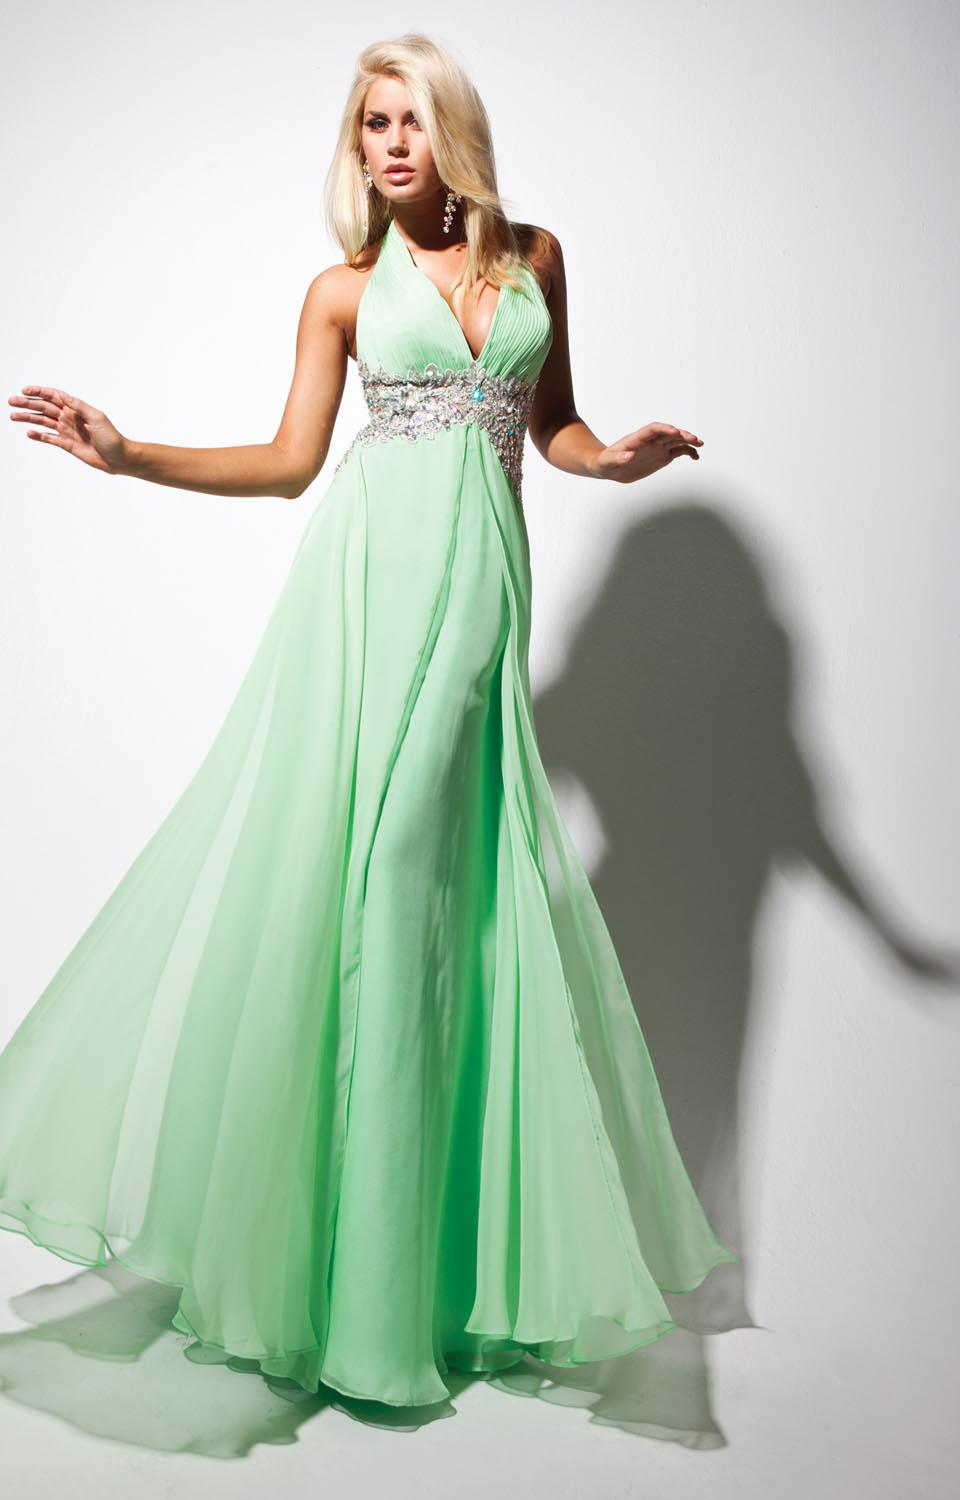 Prom Dresses Lexington Ky - Ocodea.com